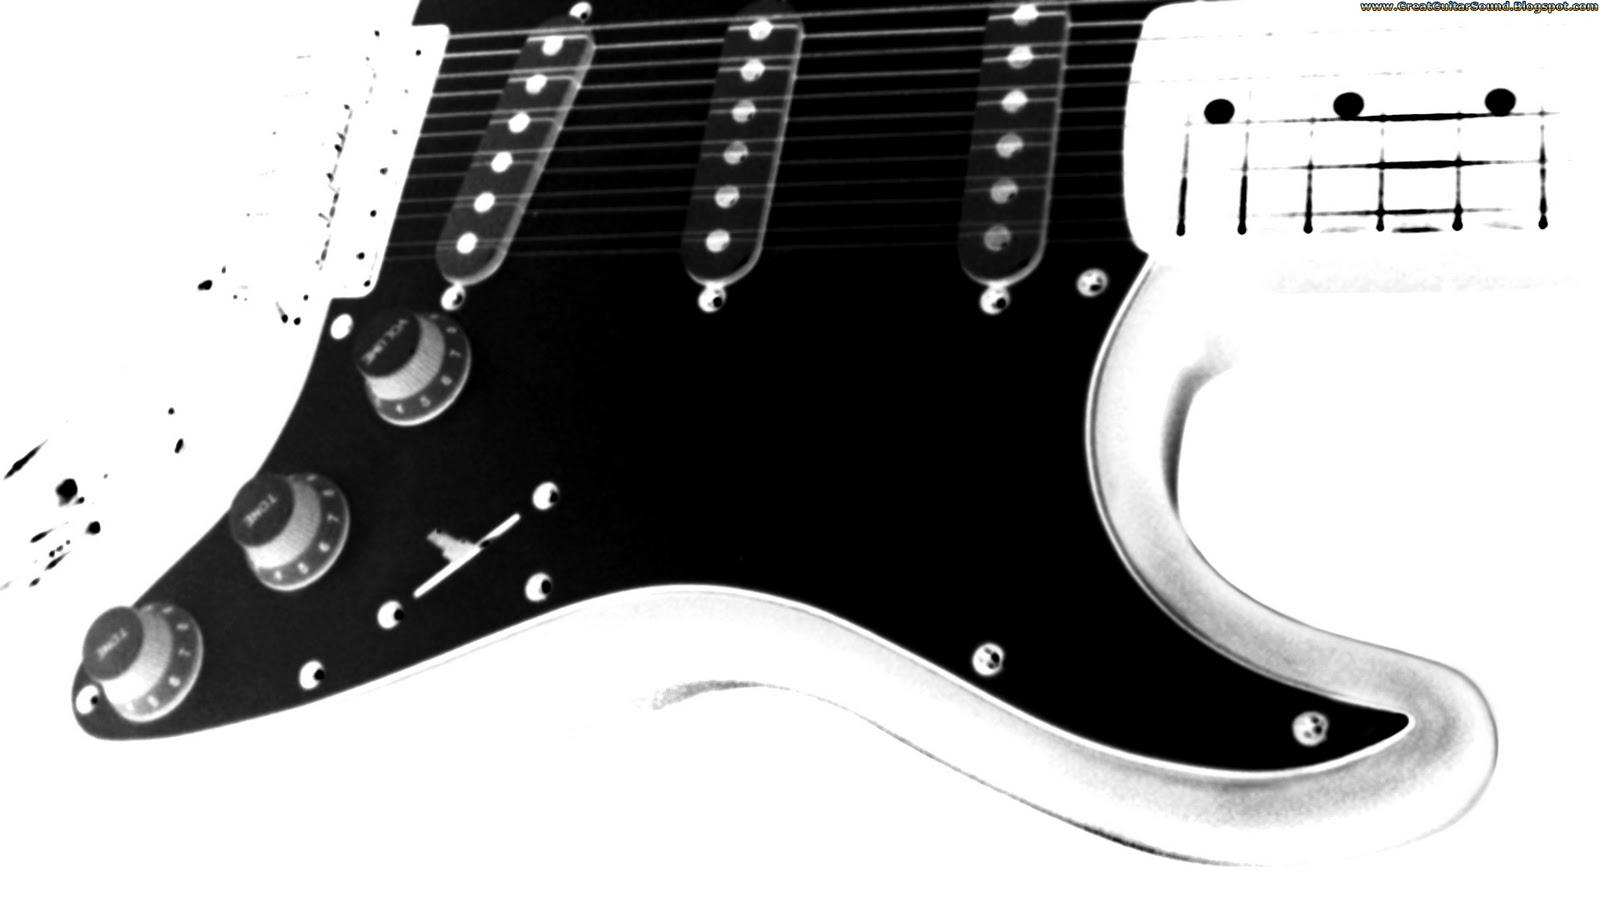 Great Guitar Sound Guitar Wallpaper White And Black Fender Stratocaster Electric Guitar Black Pickguard 1920x1080